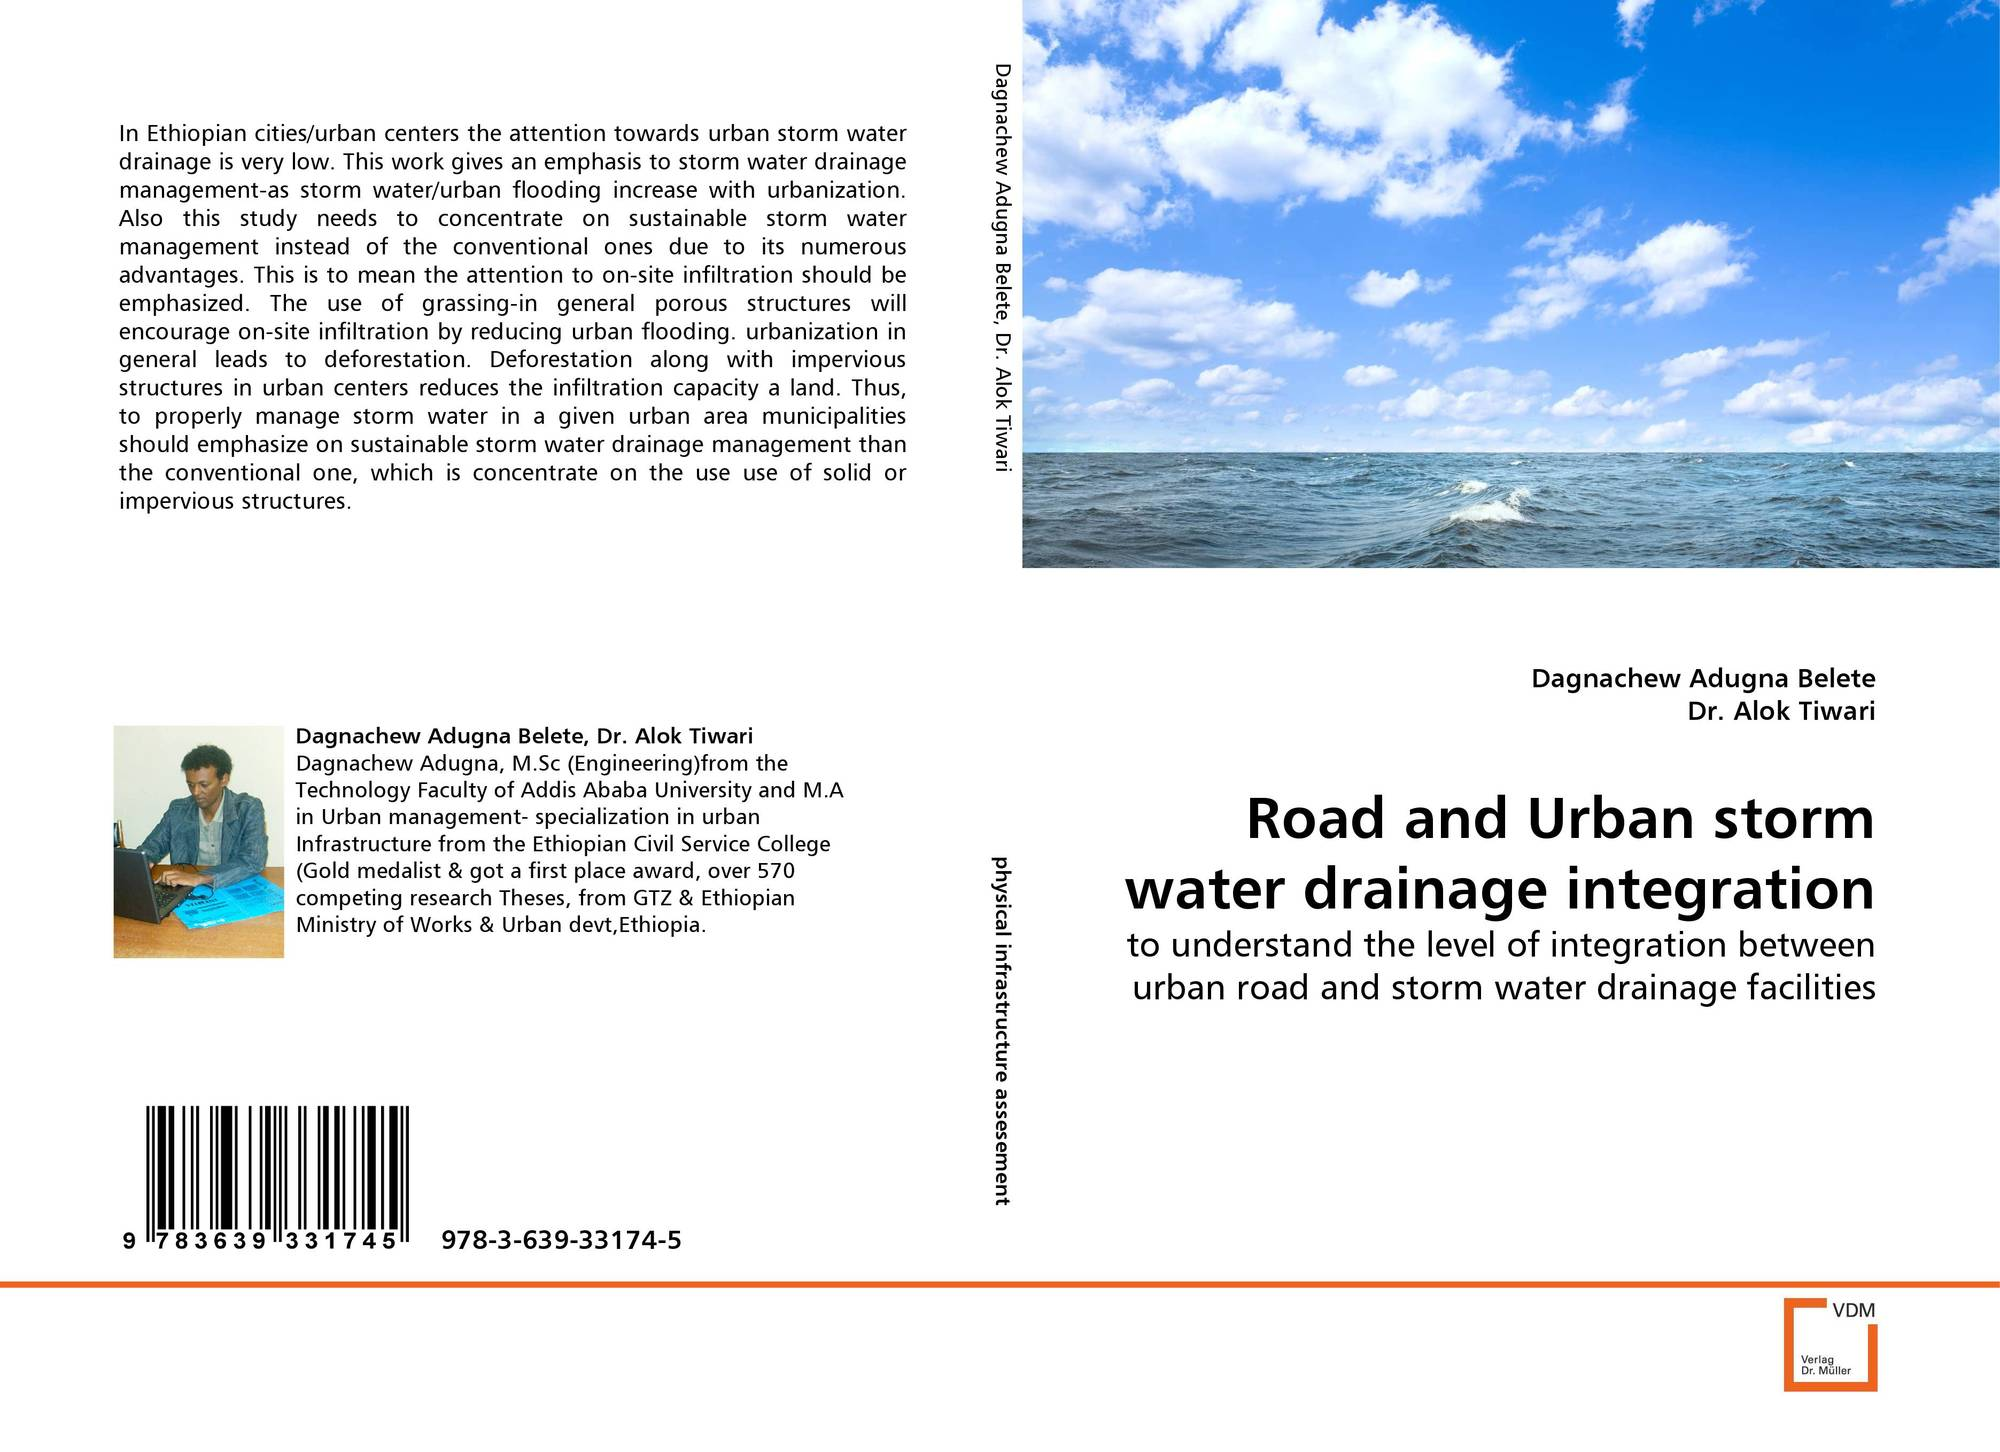 Road and Urban storm water drainage integration, 978-3-639